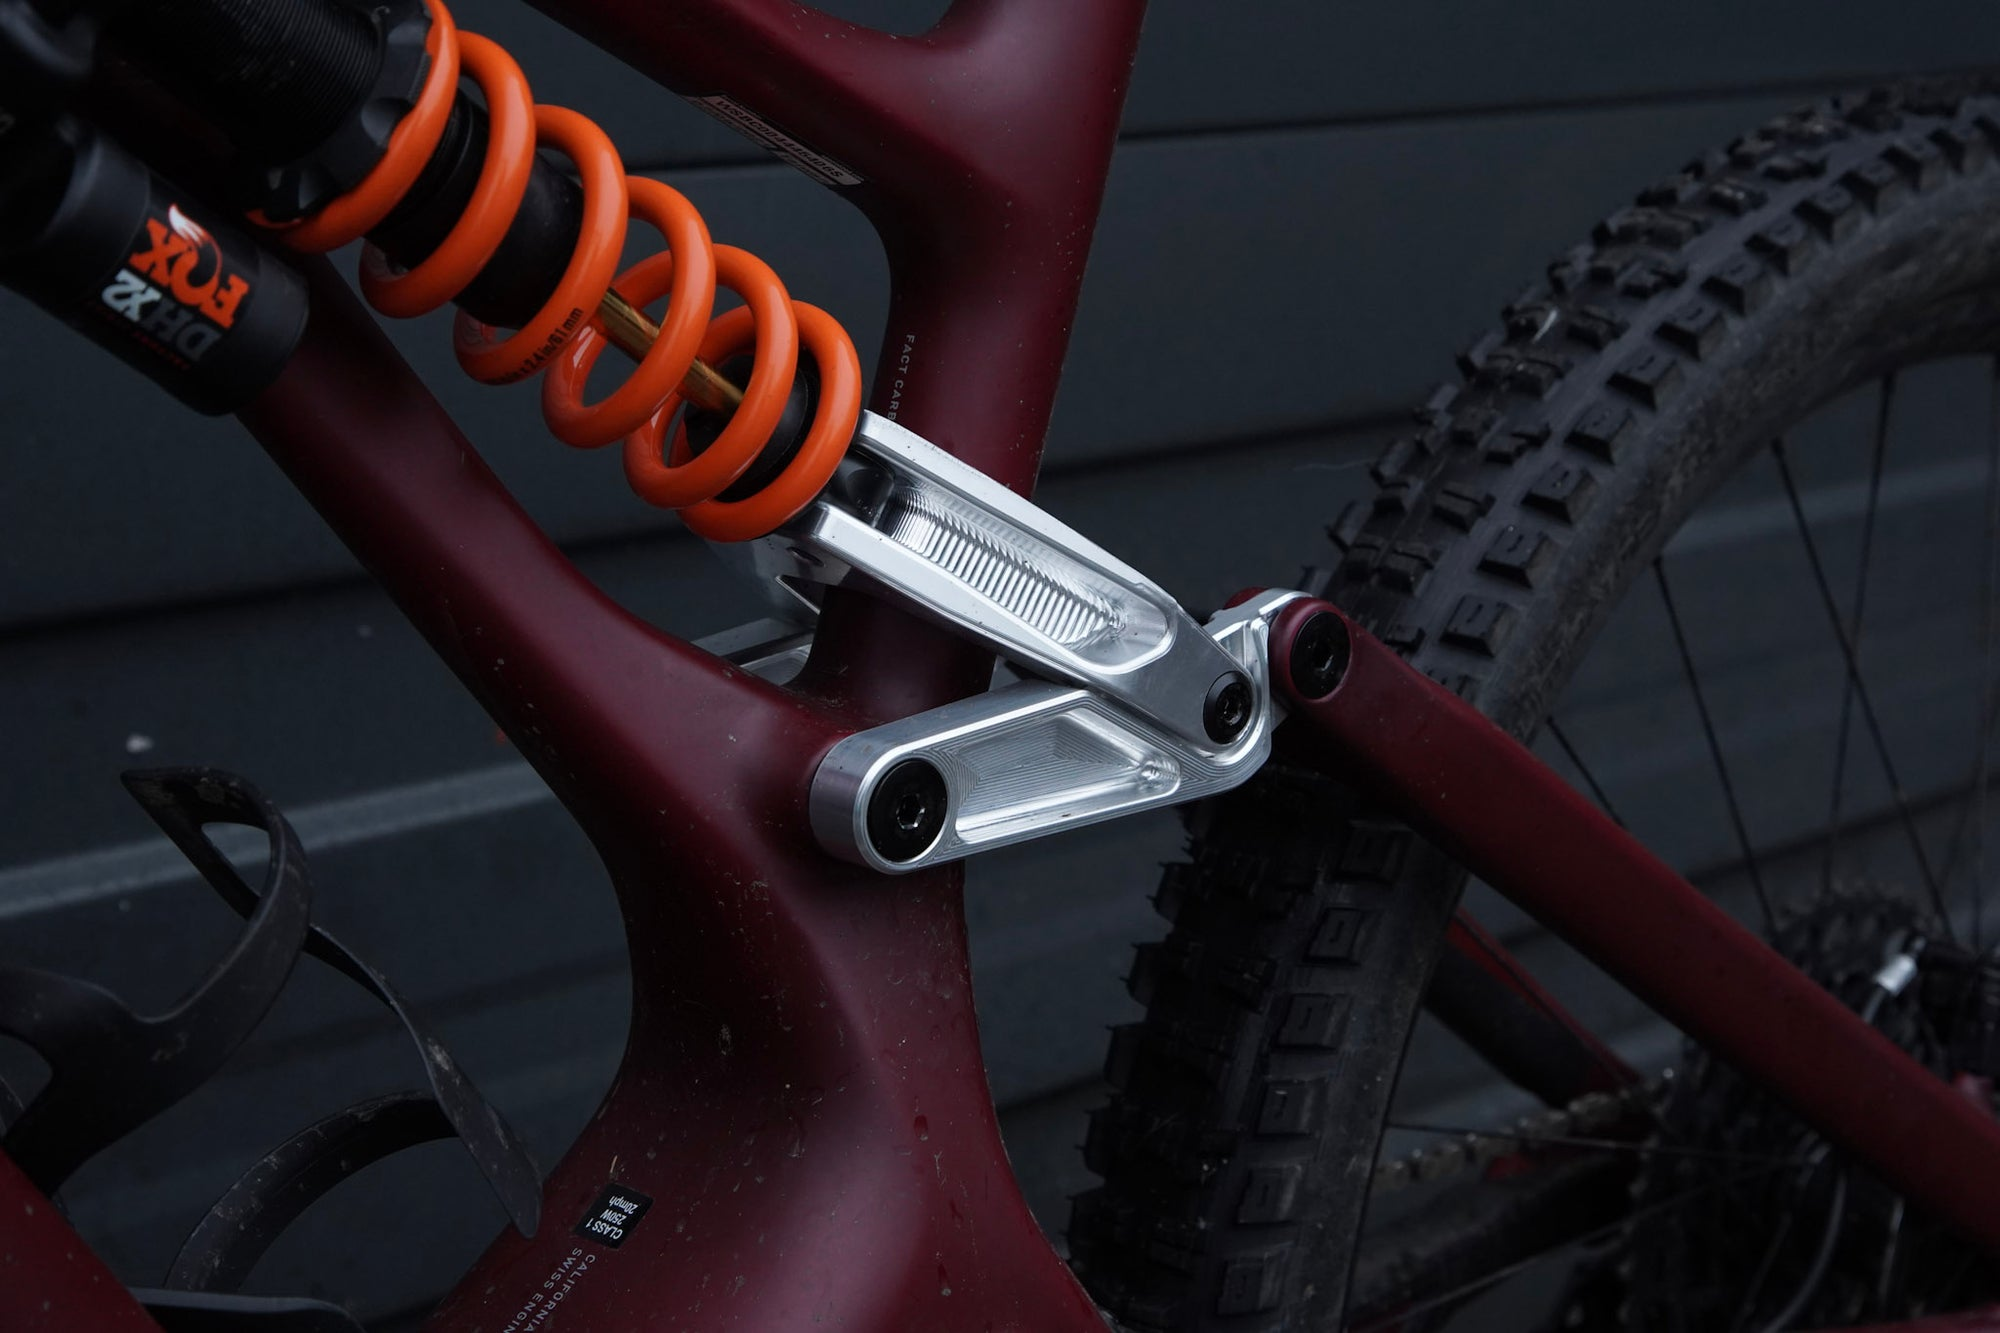 Specialized Linkages